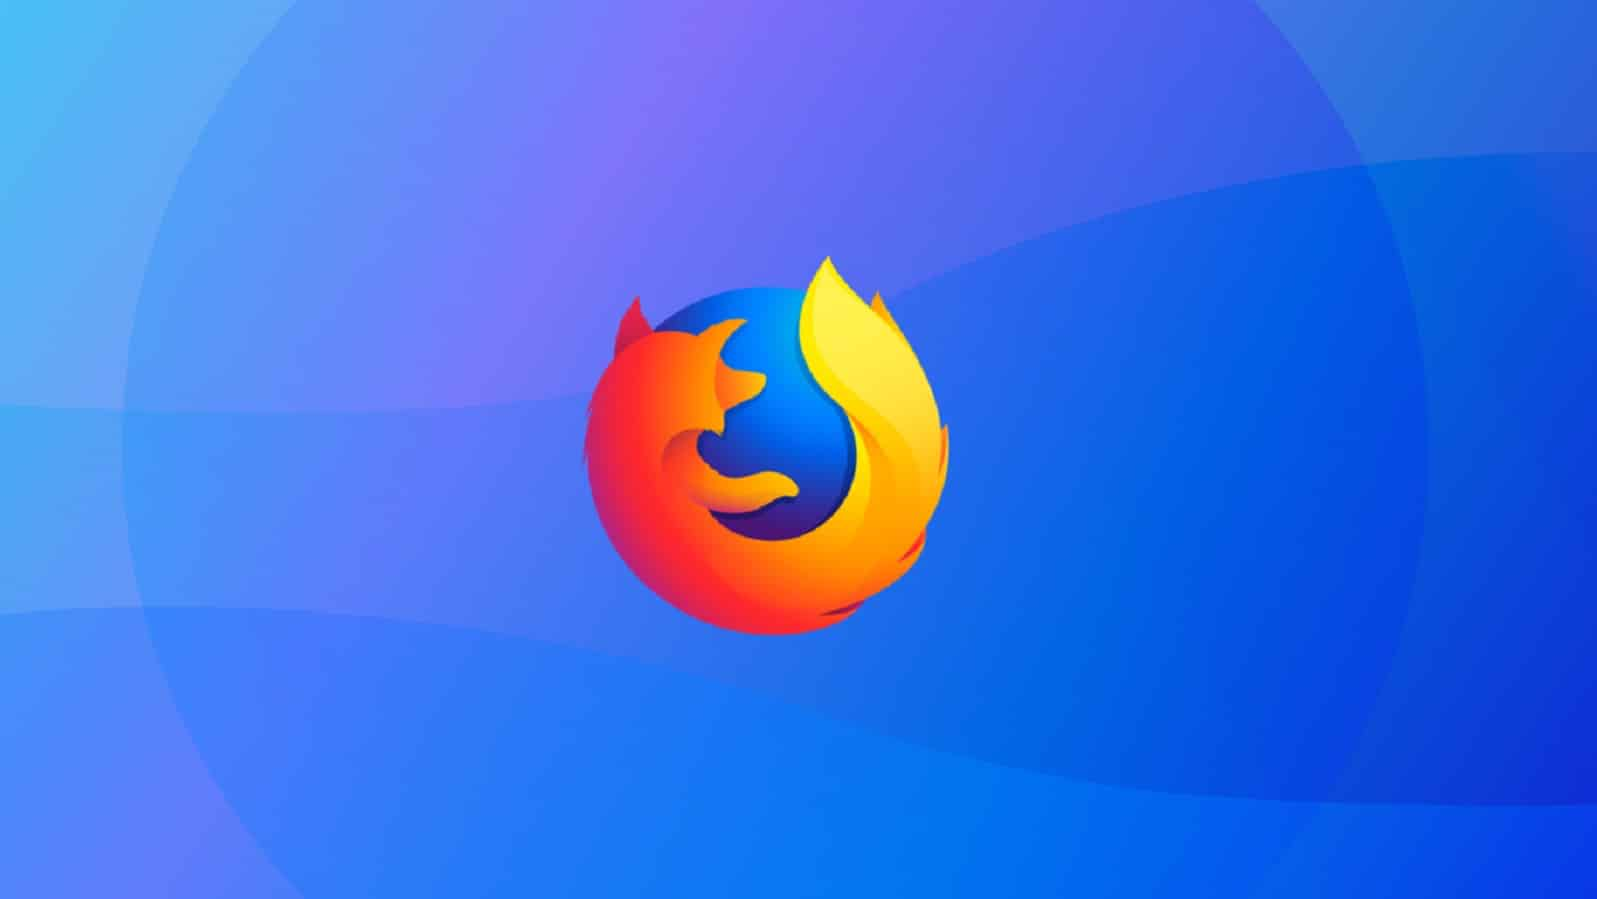 mozilla firefox logo on blue background